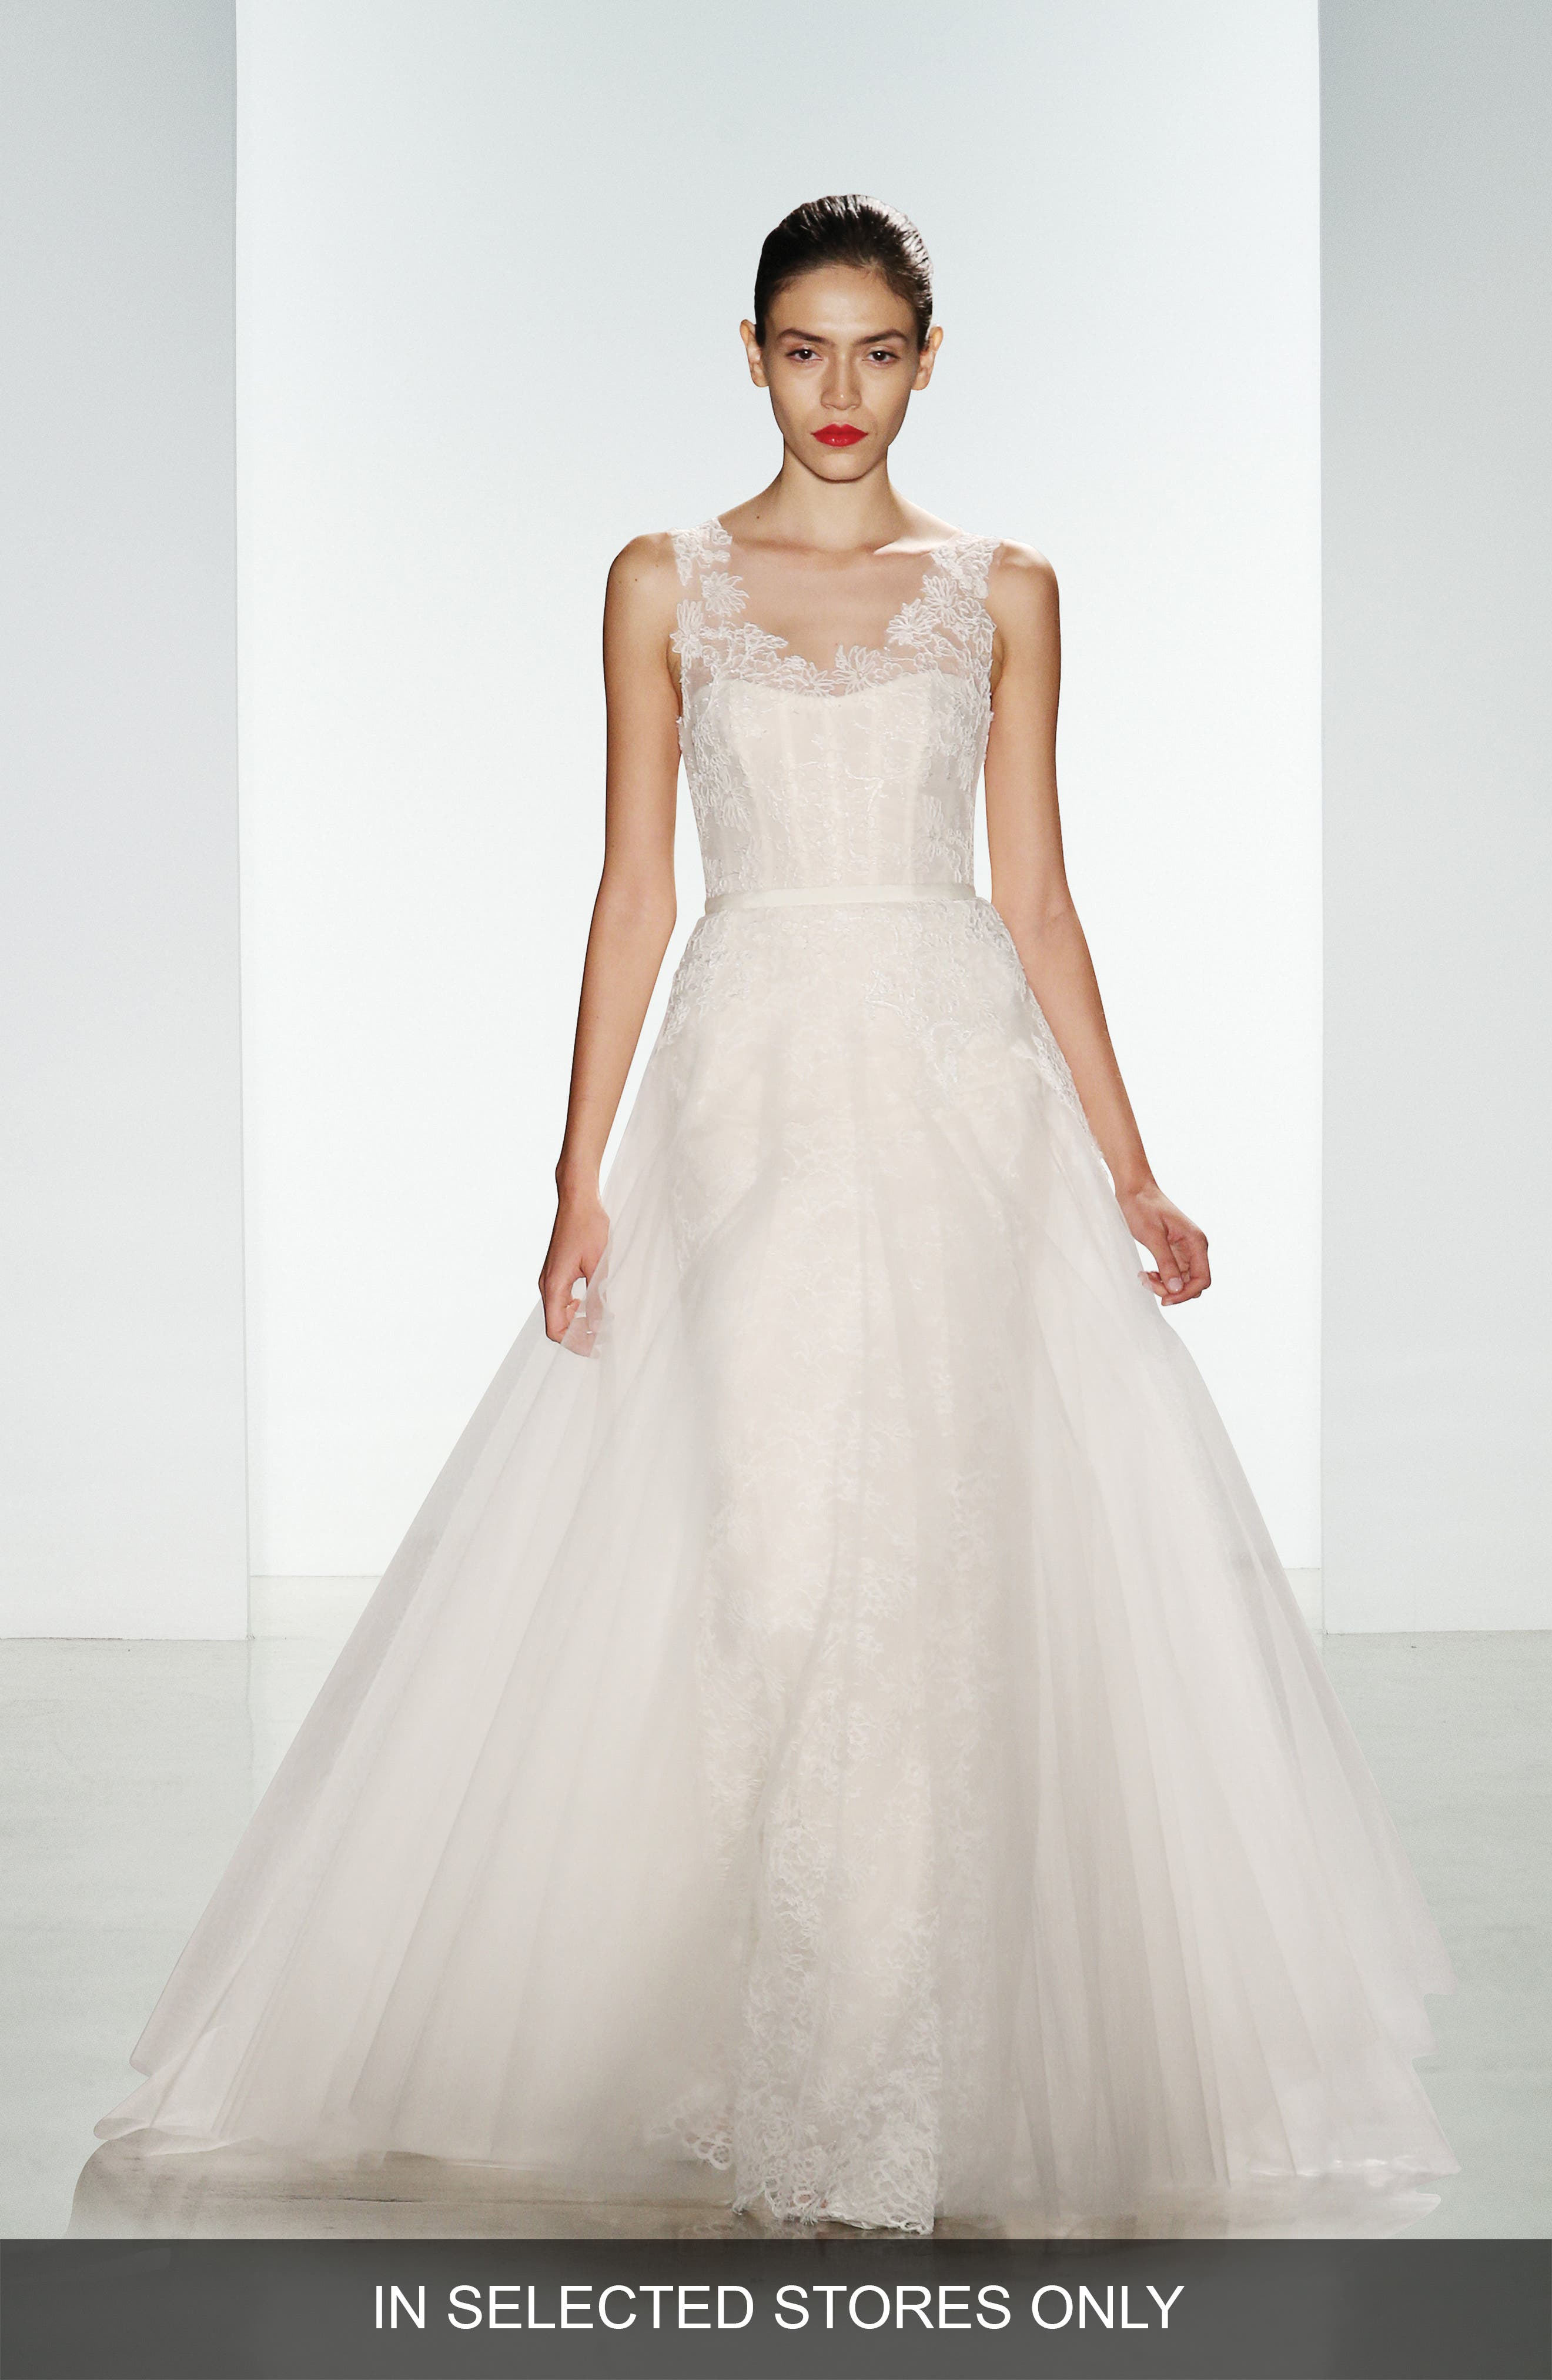 Rae Corded Lace Gown with Tulle Overskirt,                         Main,                         color, Ivory/Blush